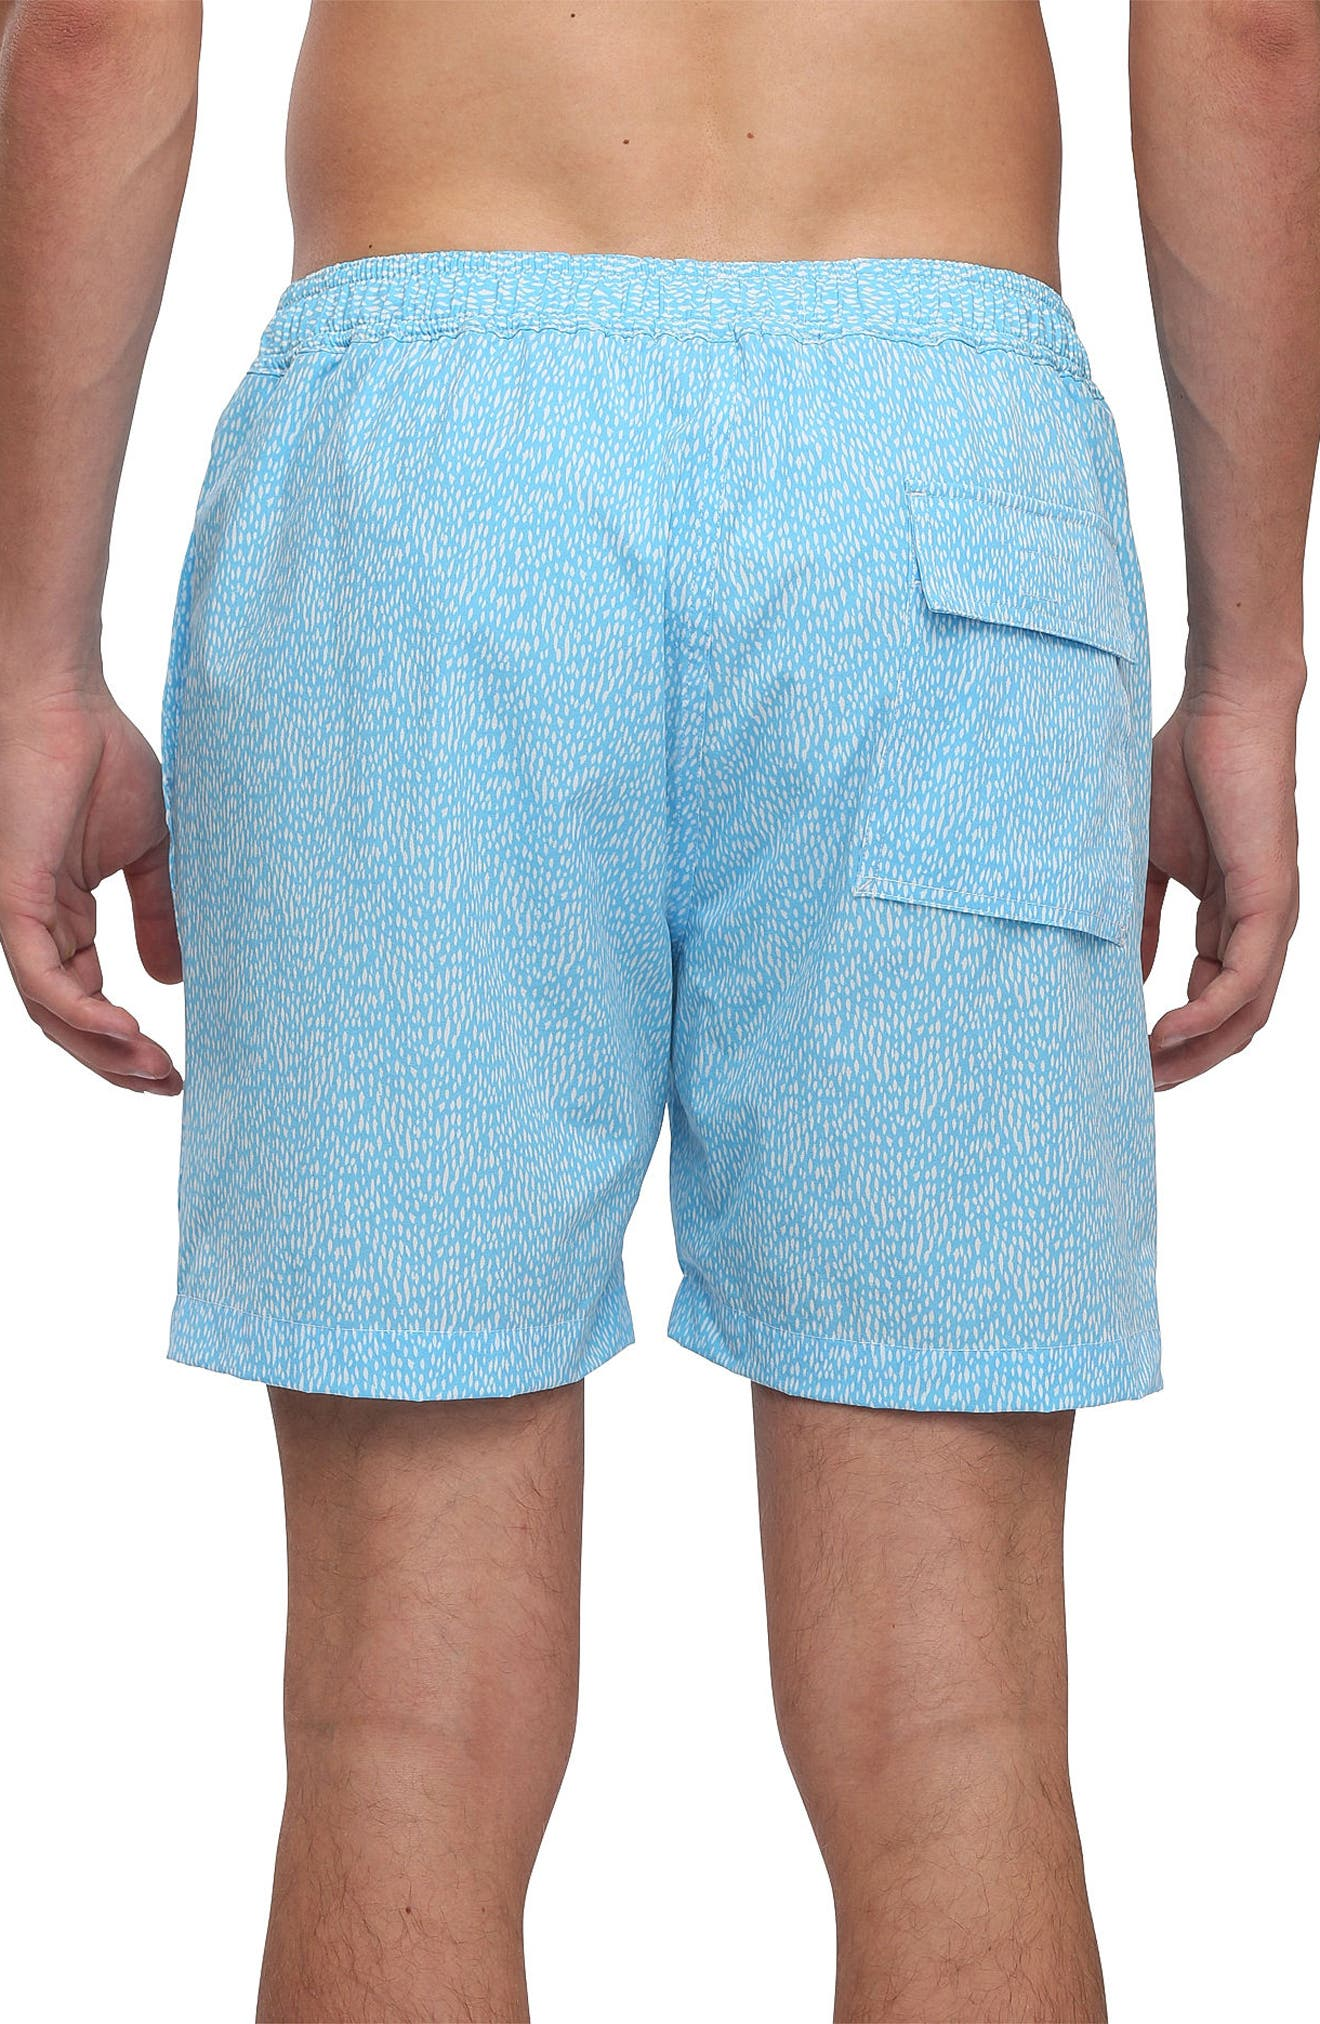 Swim Shorts,                             Alternate thumbnail 2, color,                             472